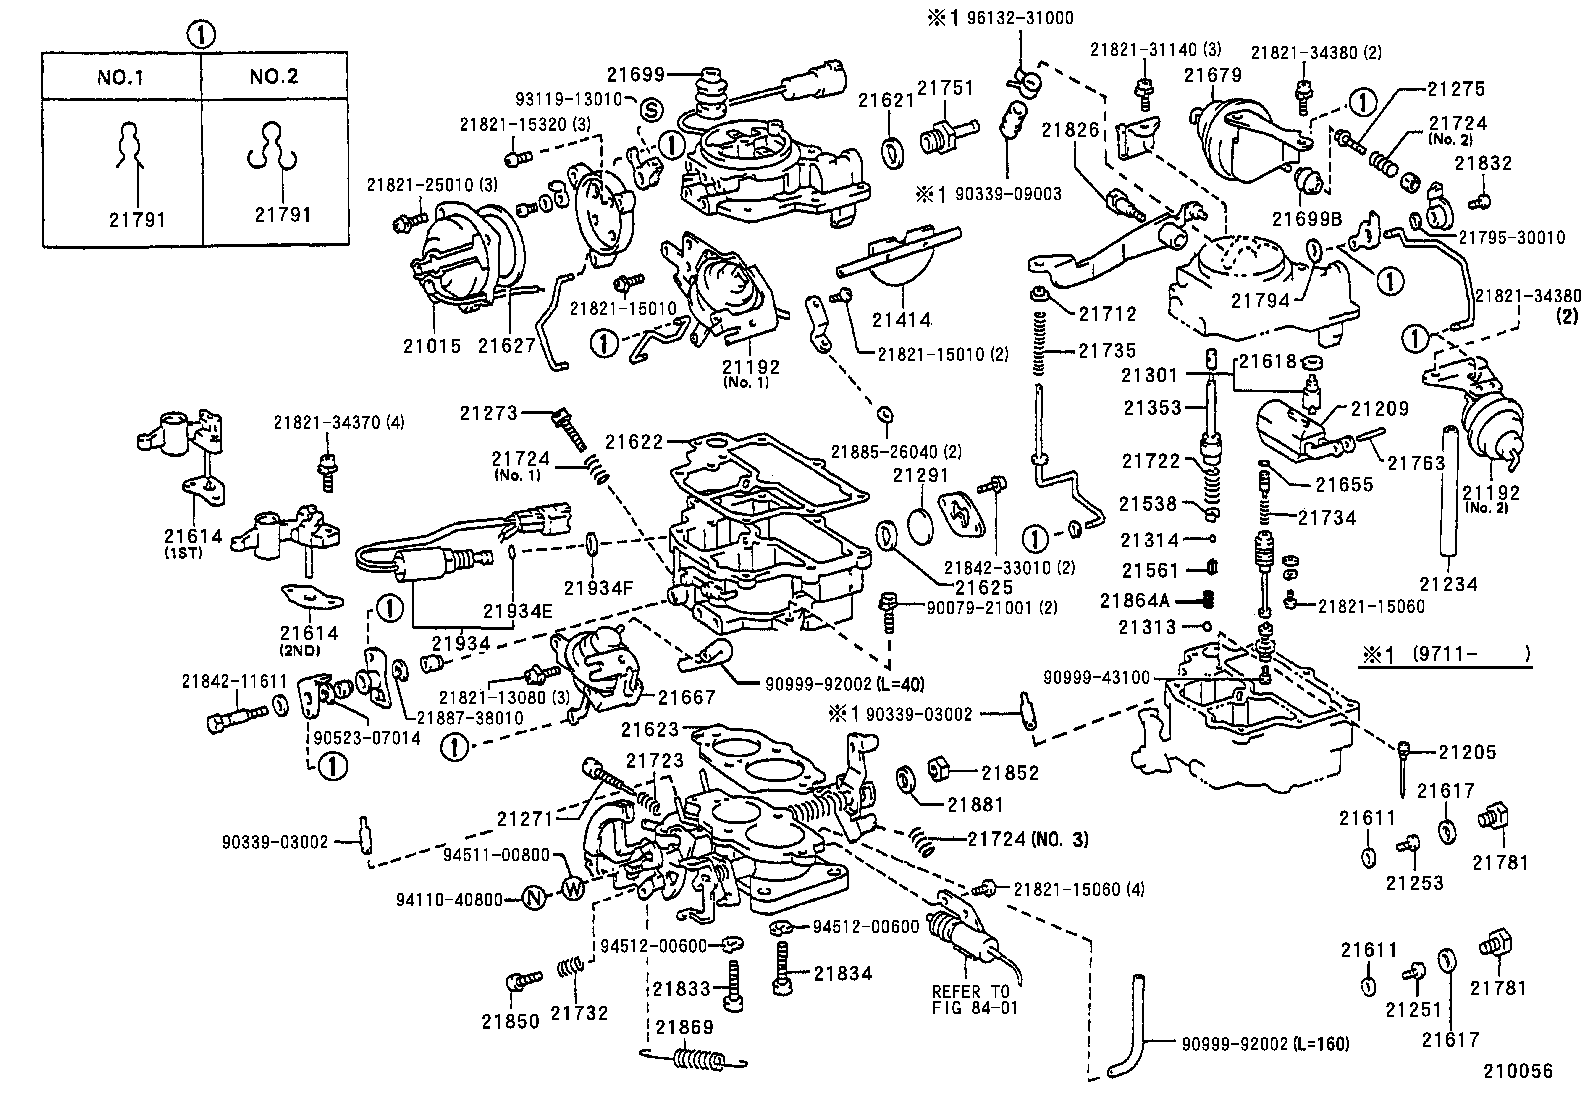 toyota 2e engine diagram 2005 - wiring diagrams all mere-soul-a -  mere-soul-a.babelweb.it  babelweb.it